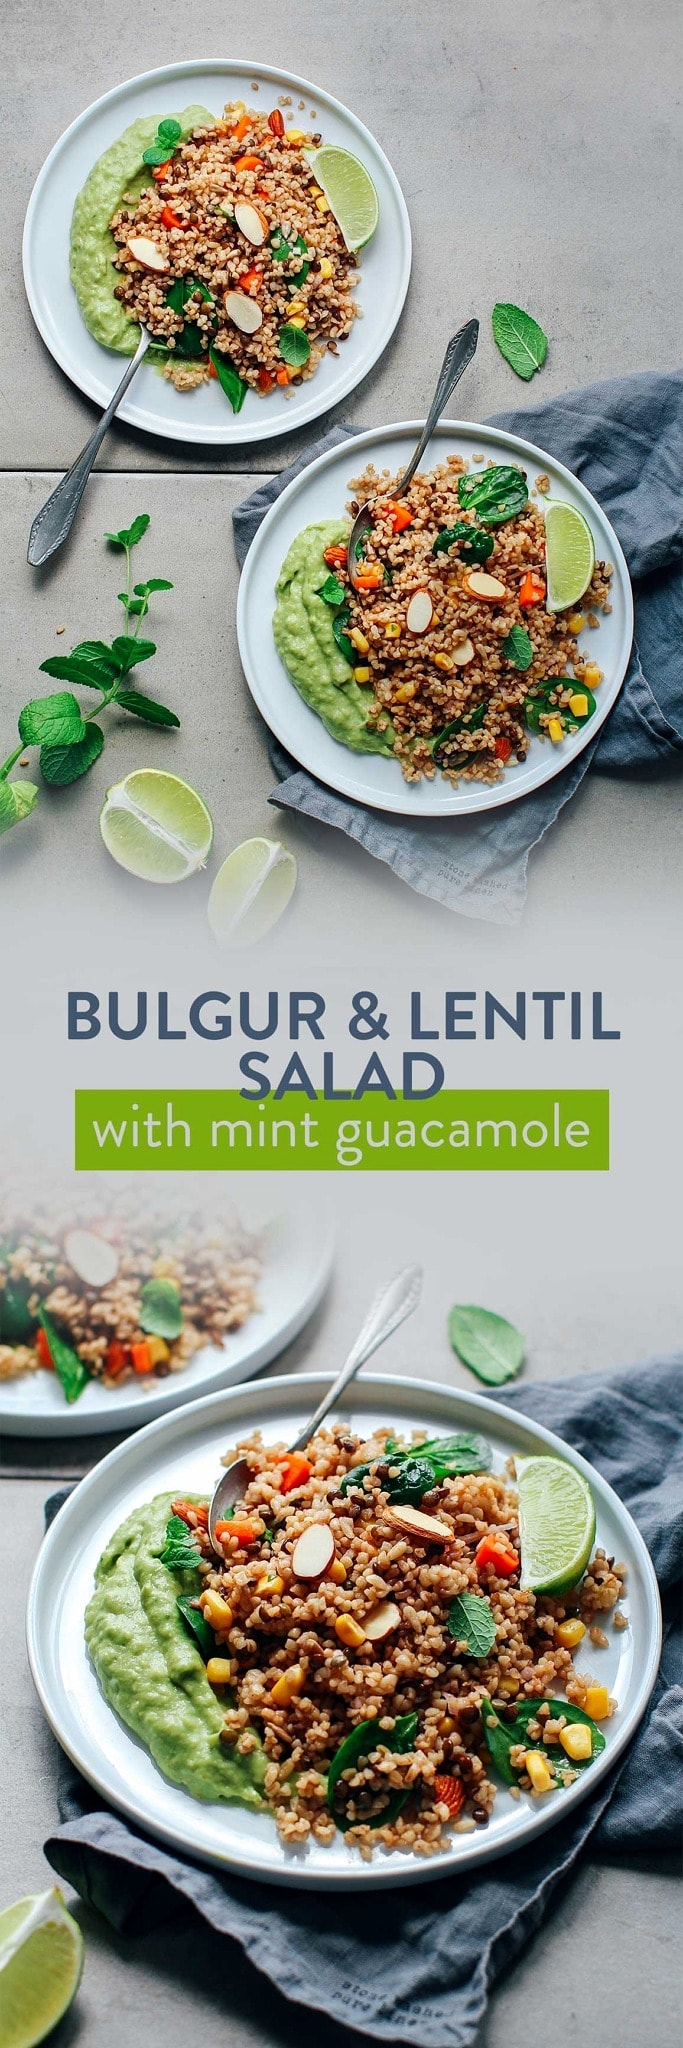 Bulgur & Lentil Salad with Mint Guacamole